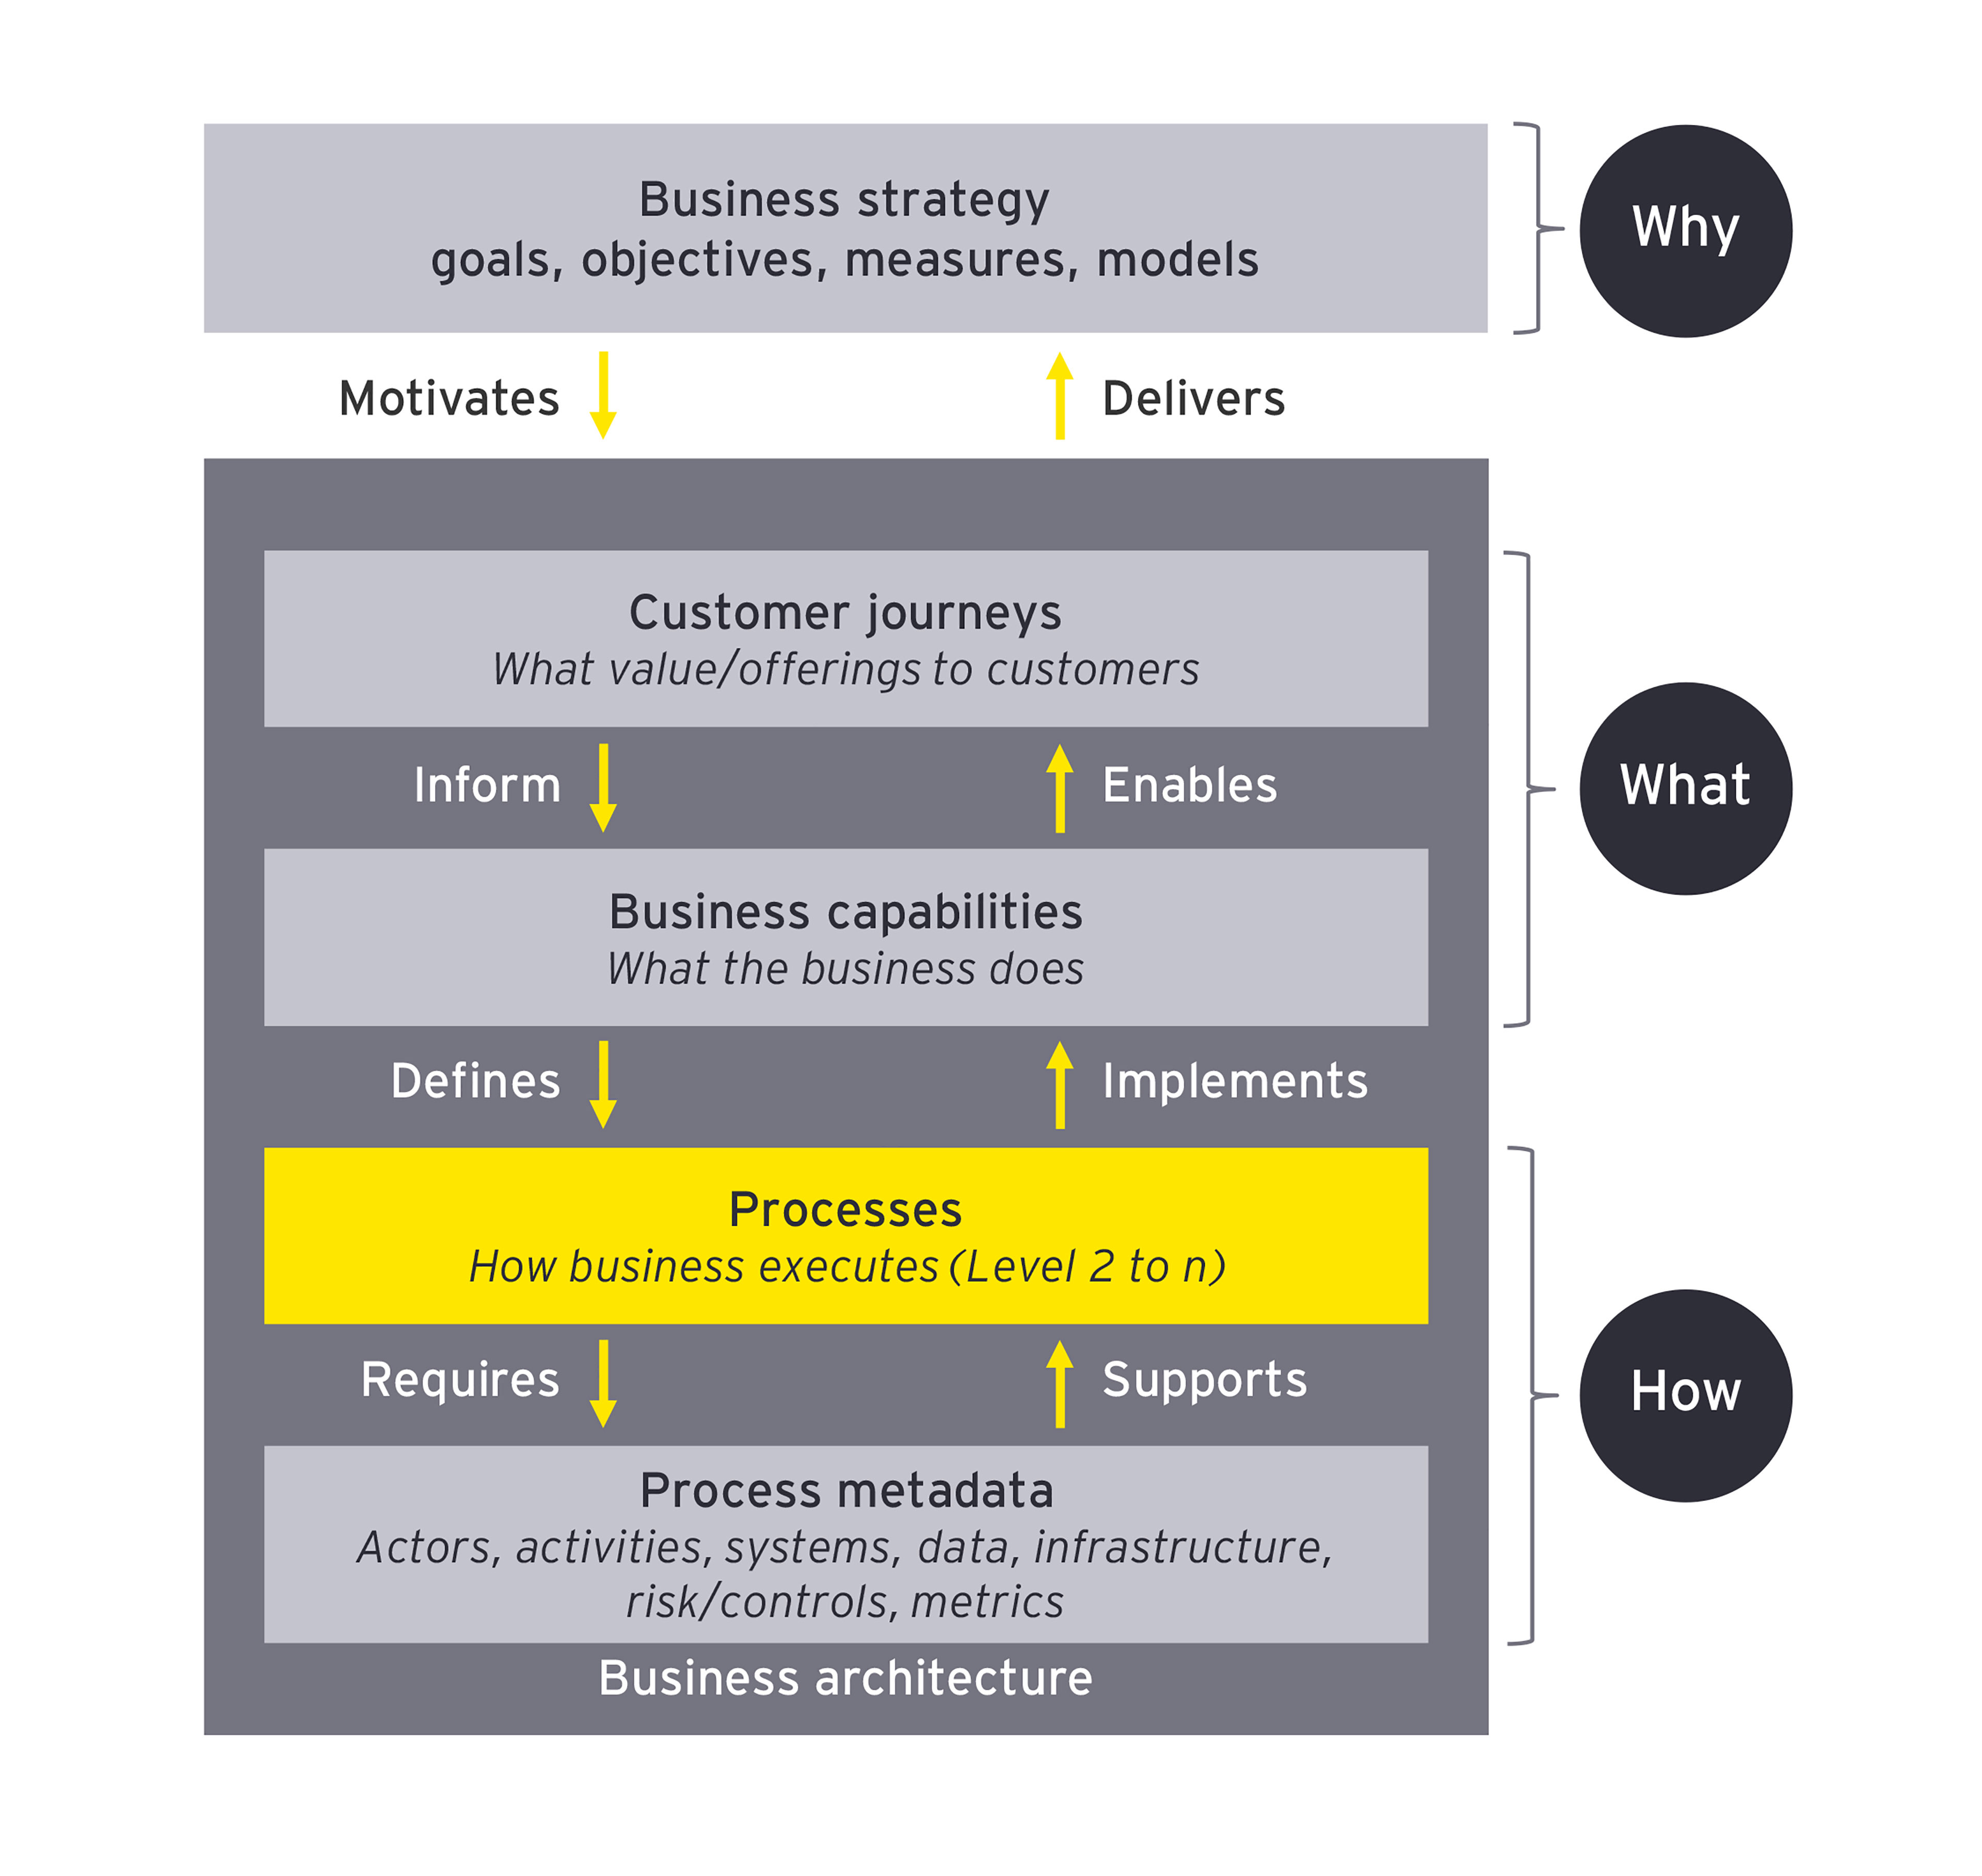 Process-centric framework of business strategy graphic image